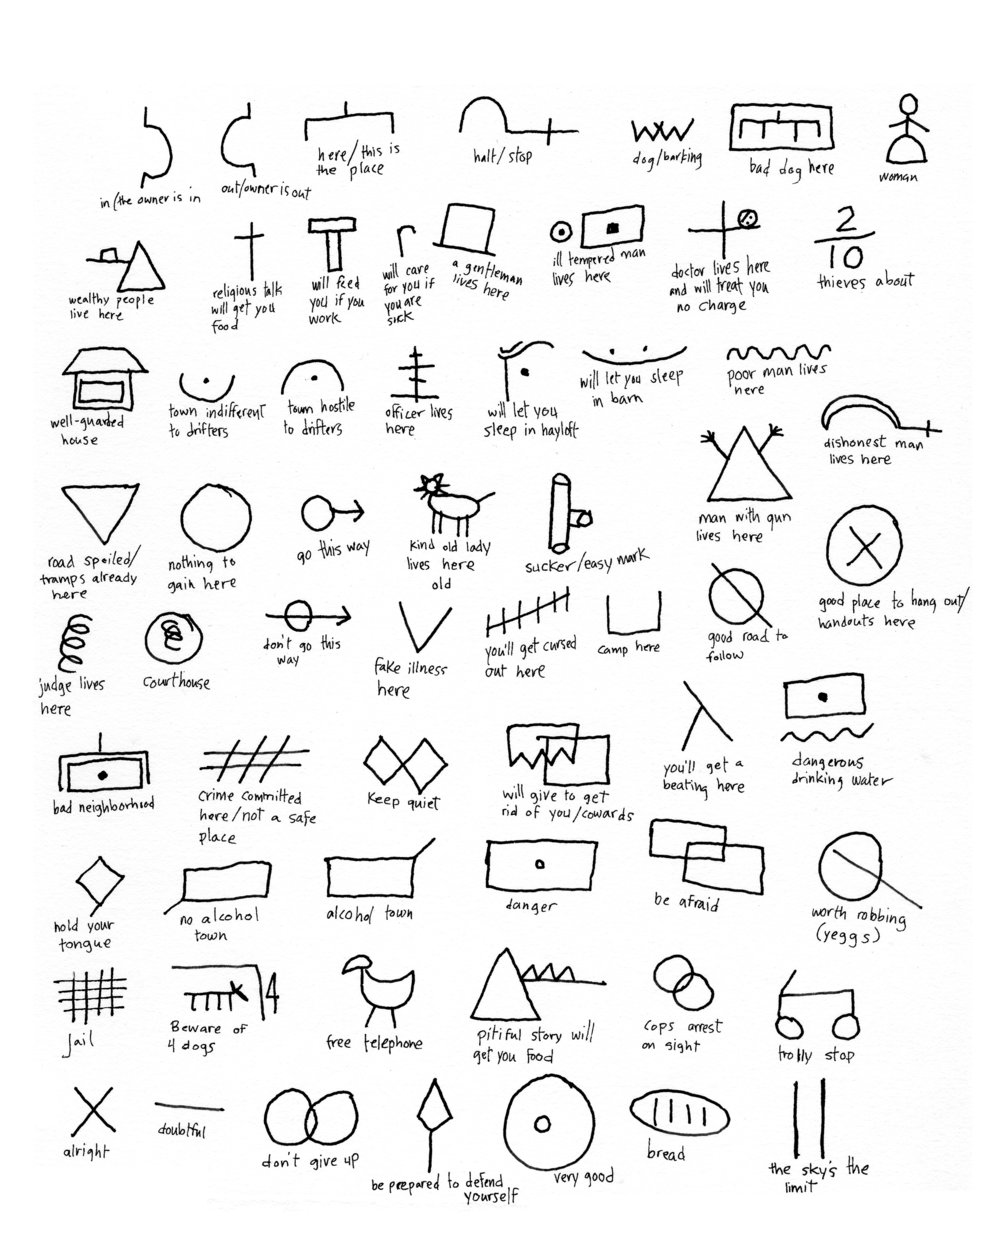 hobo signs 1, ink on paper, 8.5in. x 7in., 2009